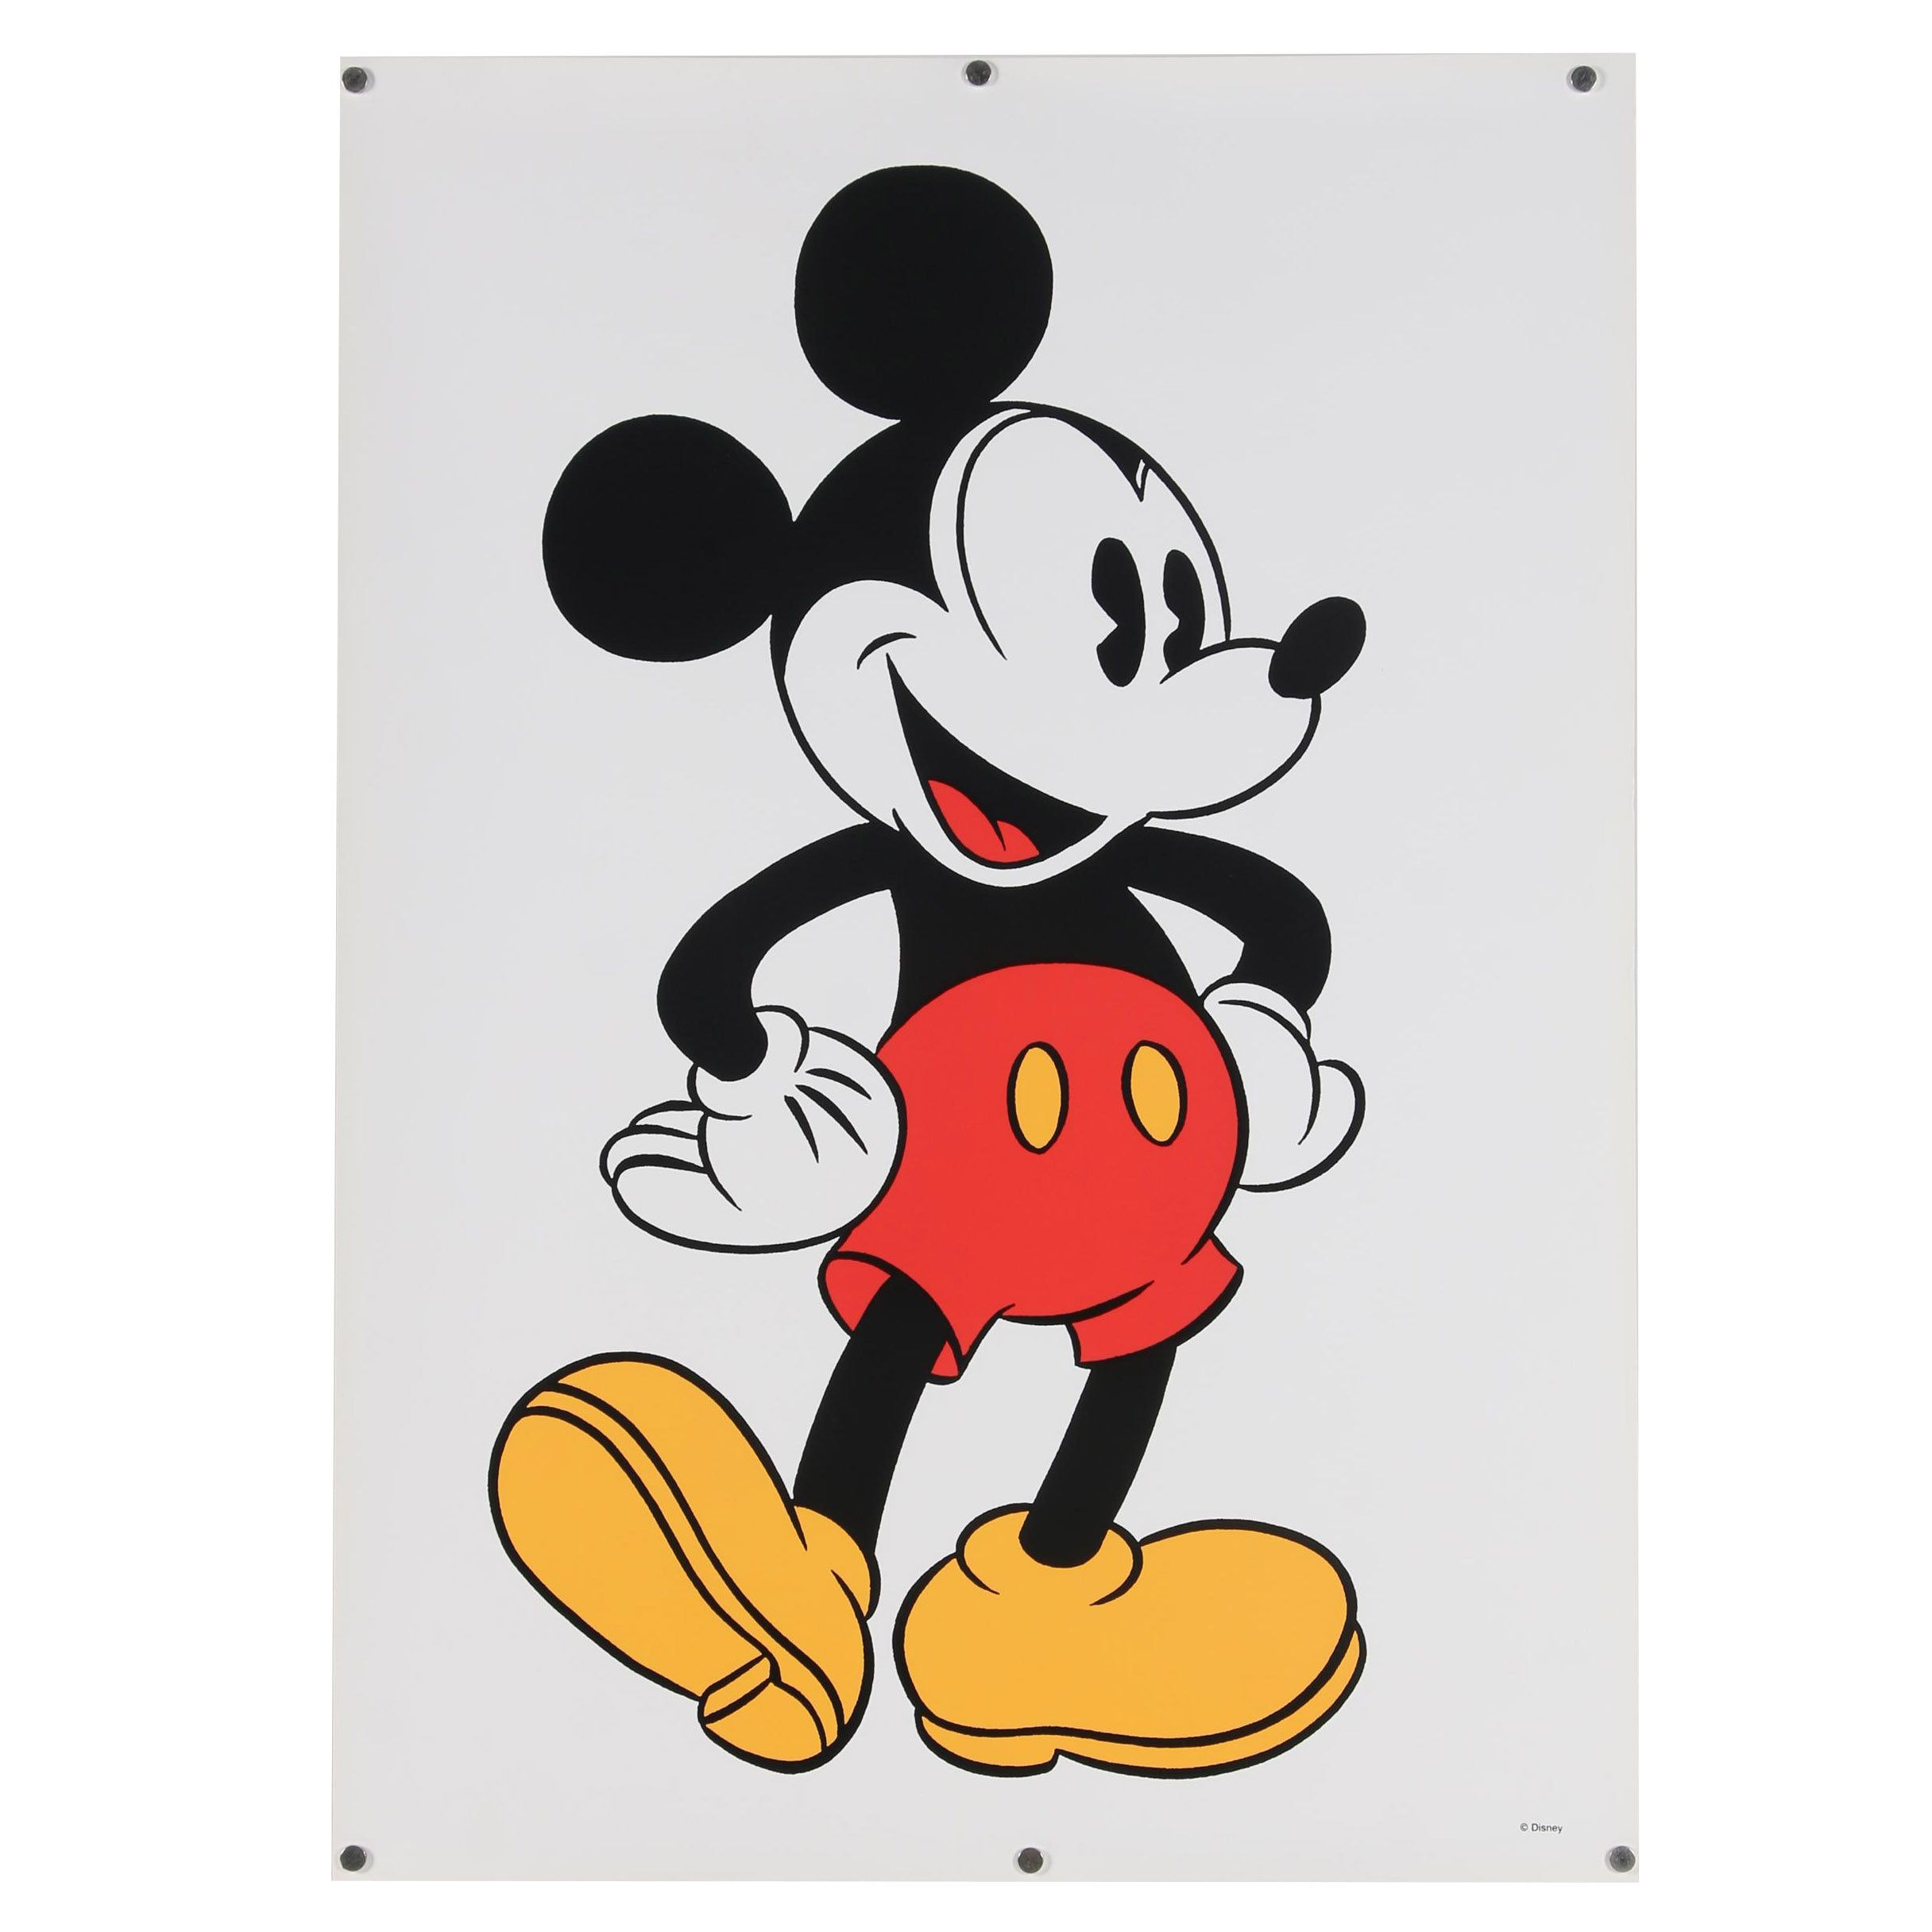 Sowa & Reiser Serigraph of Mickey Mouse